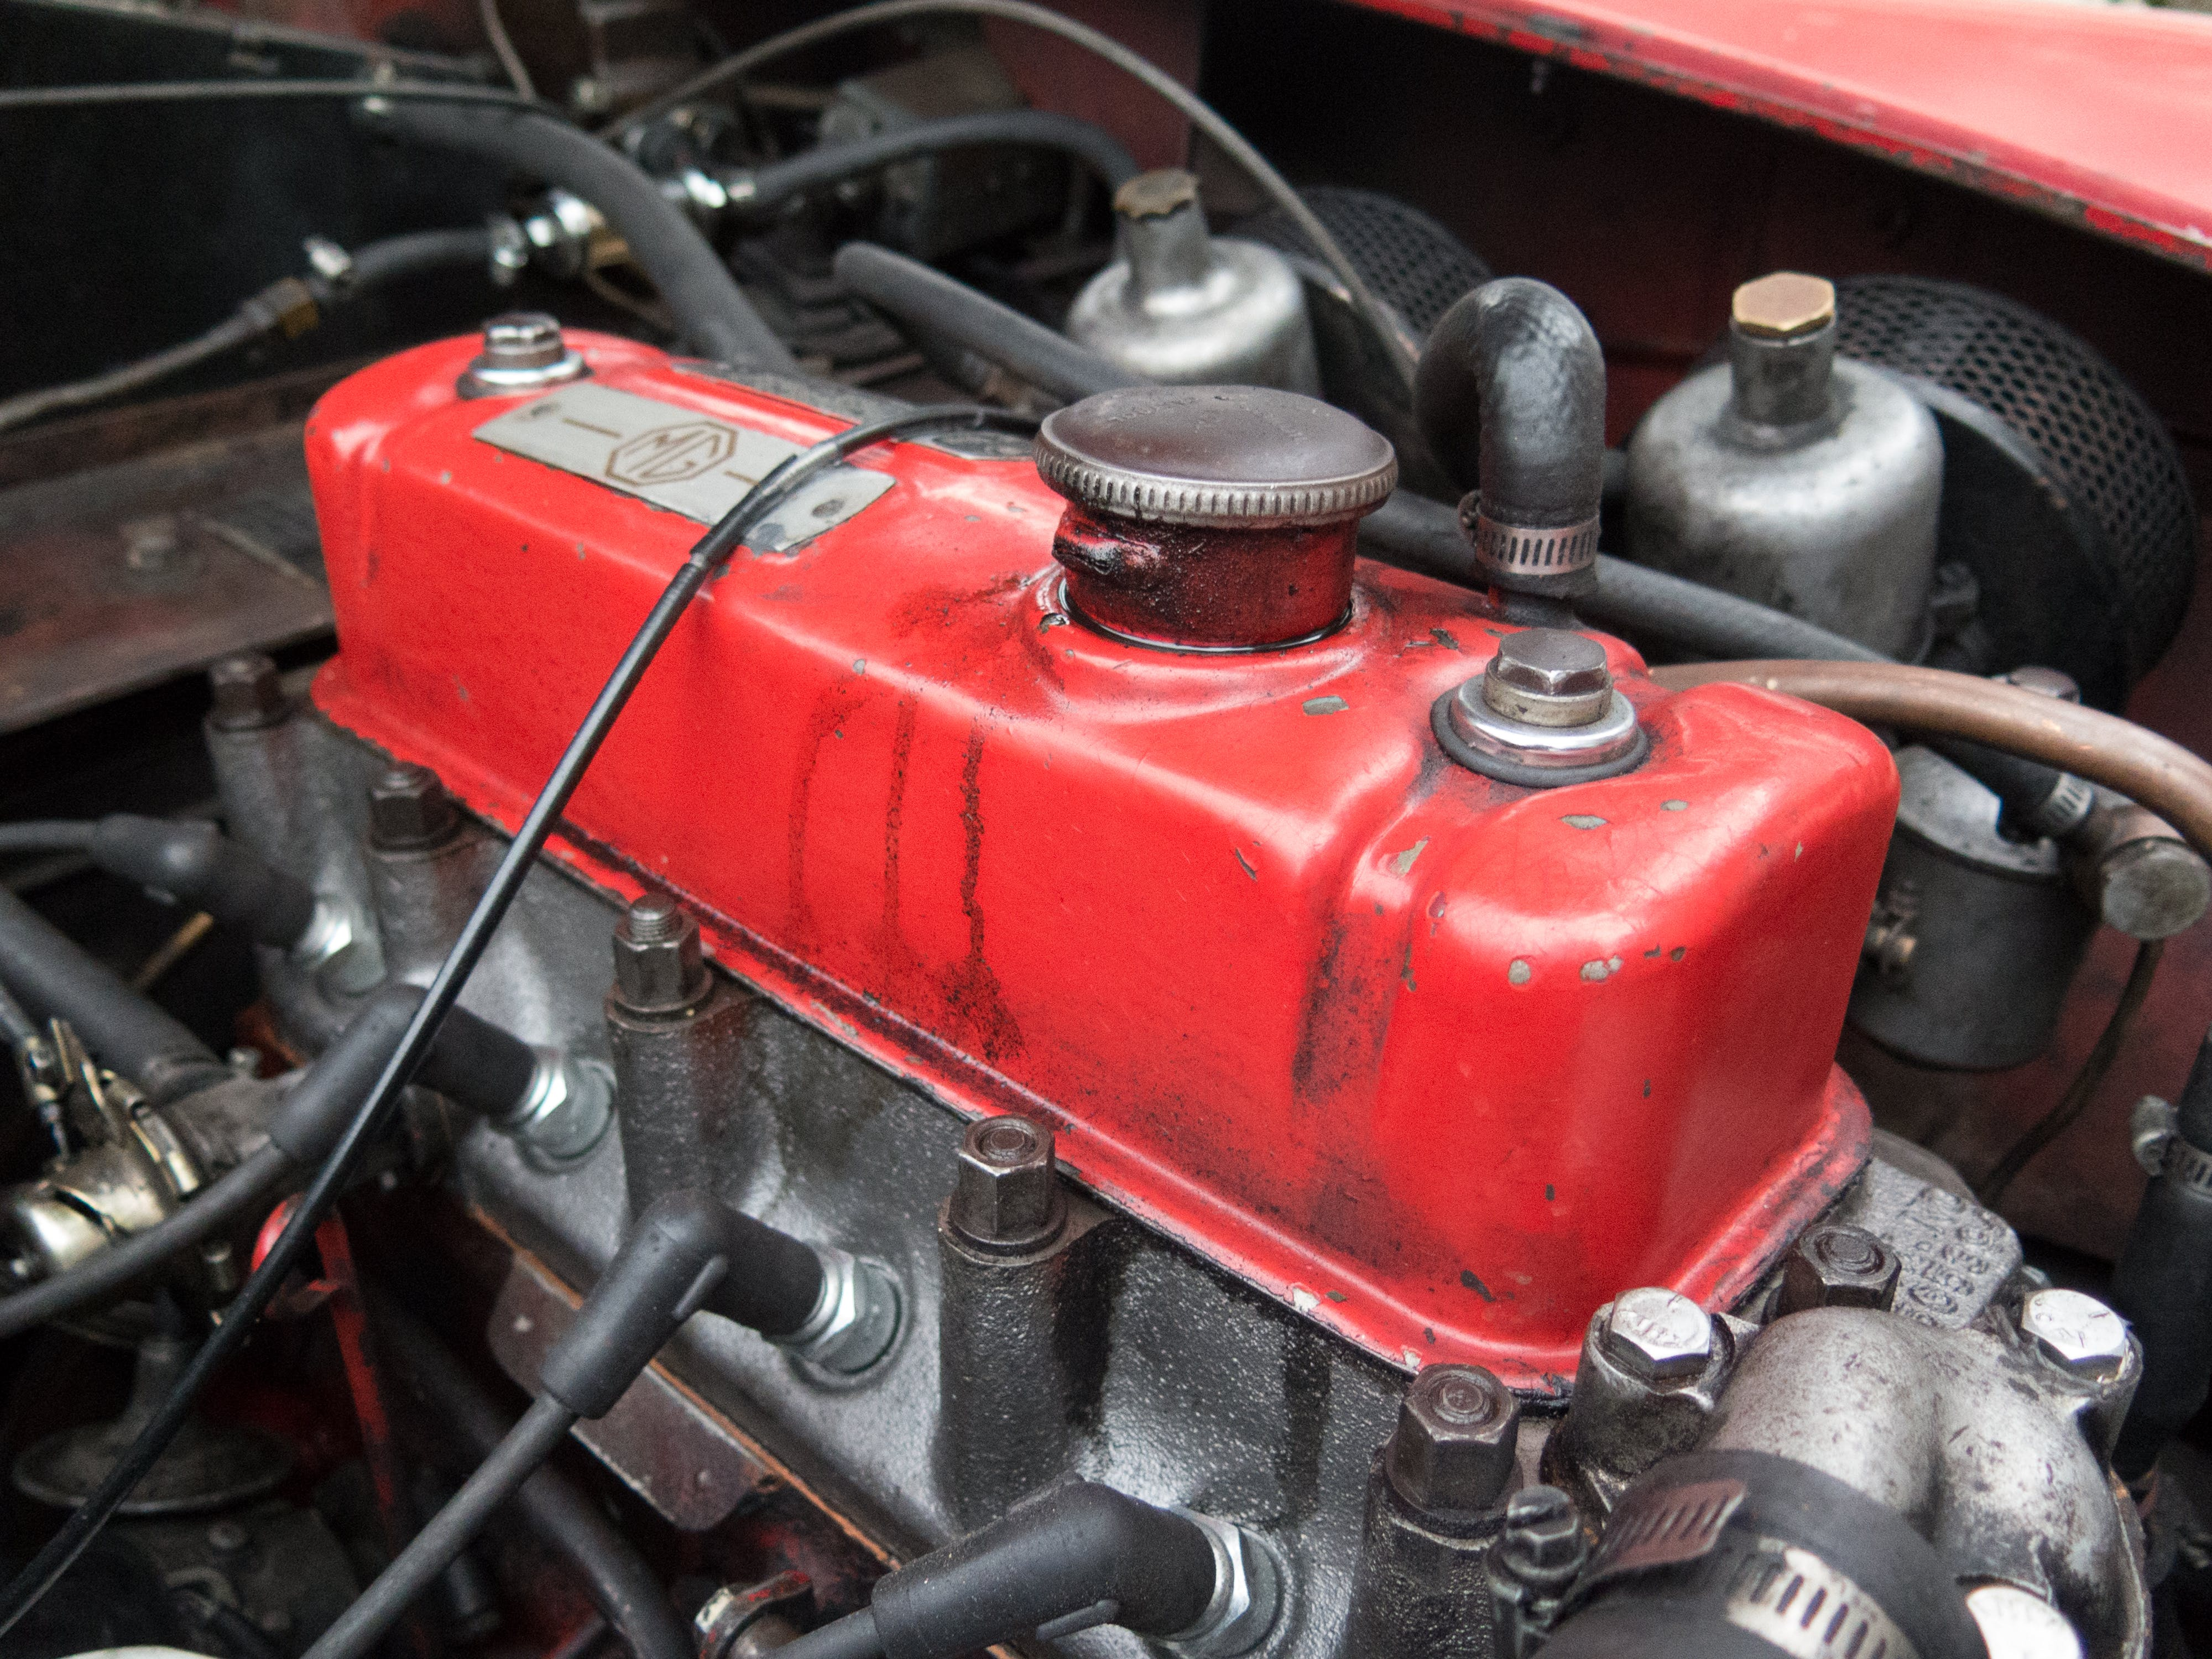 Red and Grey Vehicle Engine